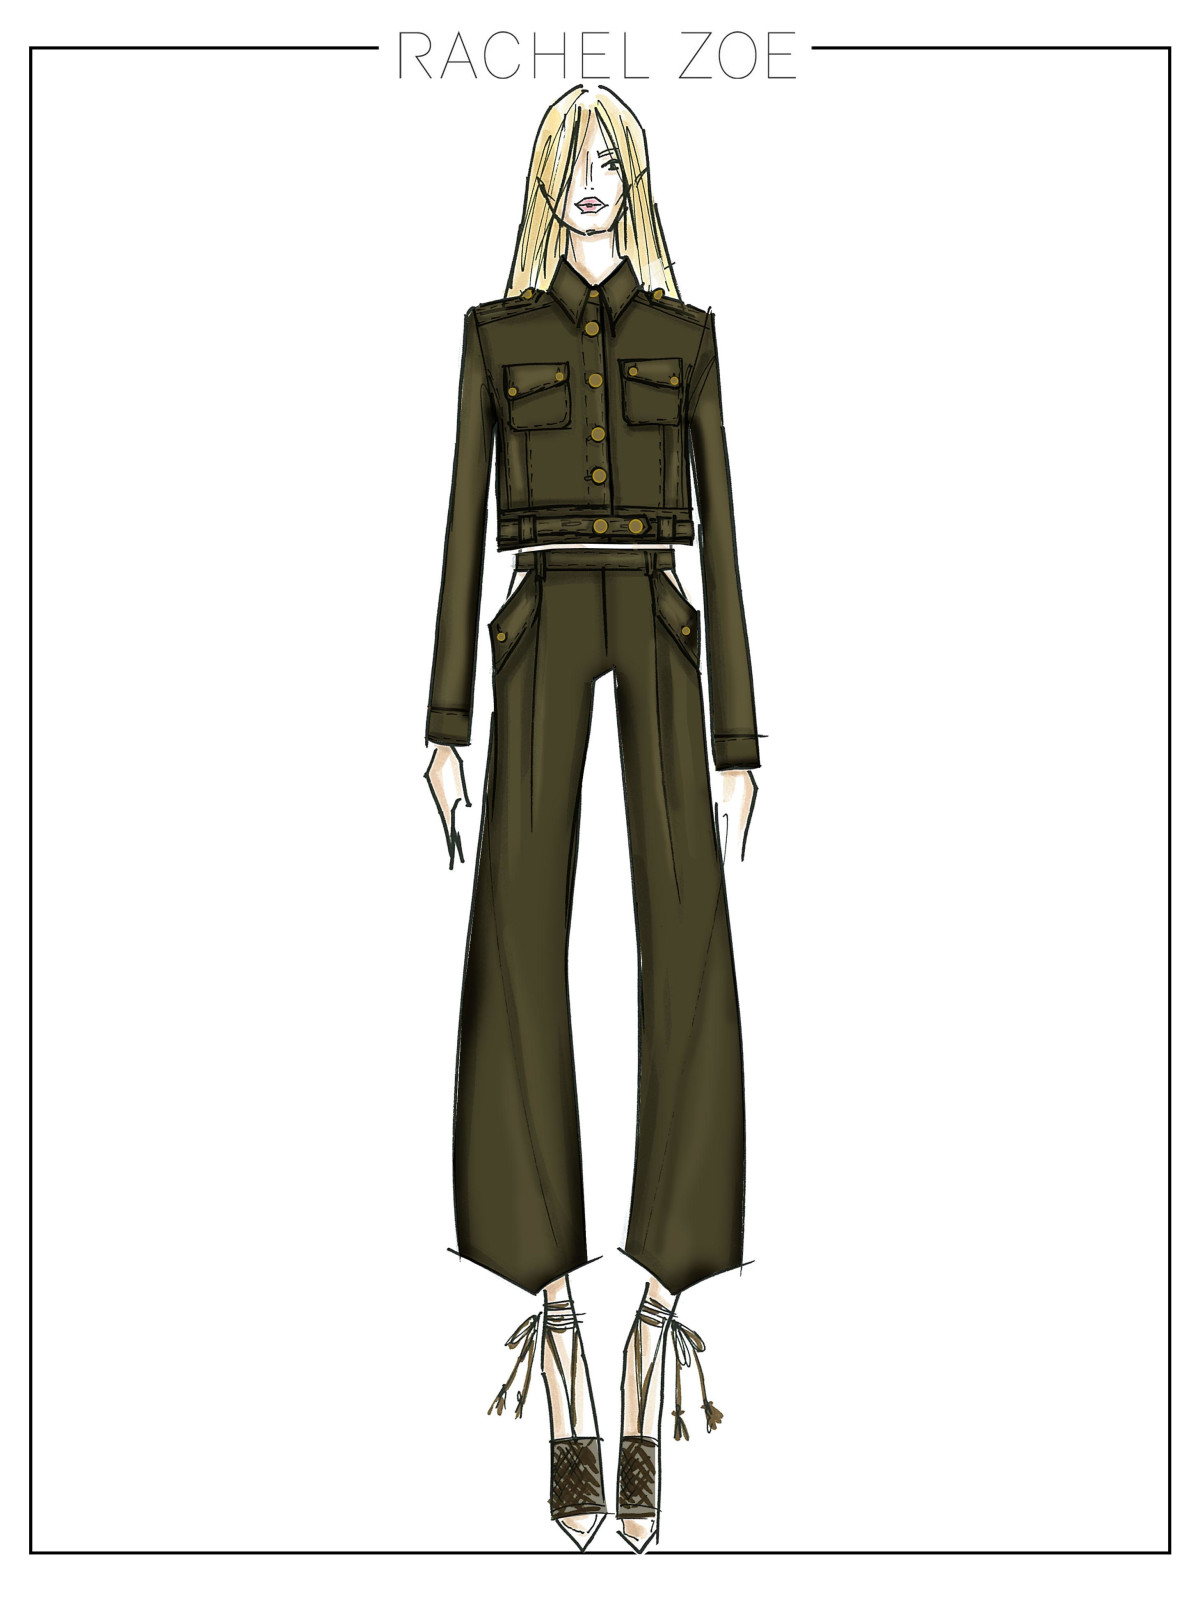 Rachel Zoe inspiration sketch New York Fashion Week spring 2015